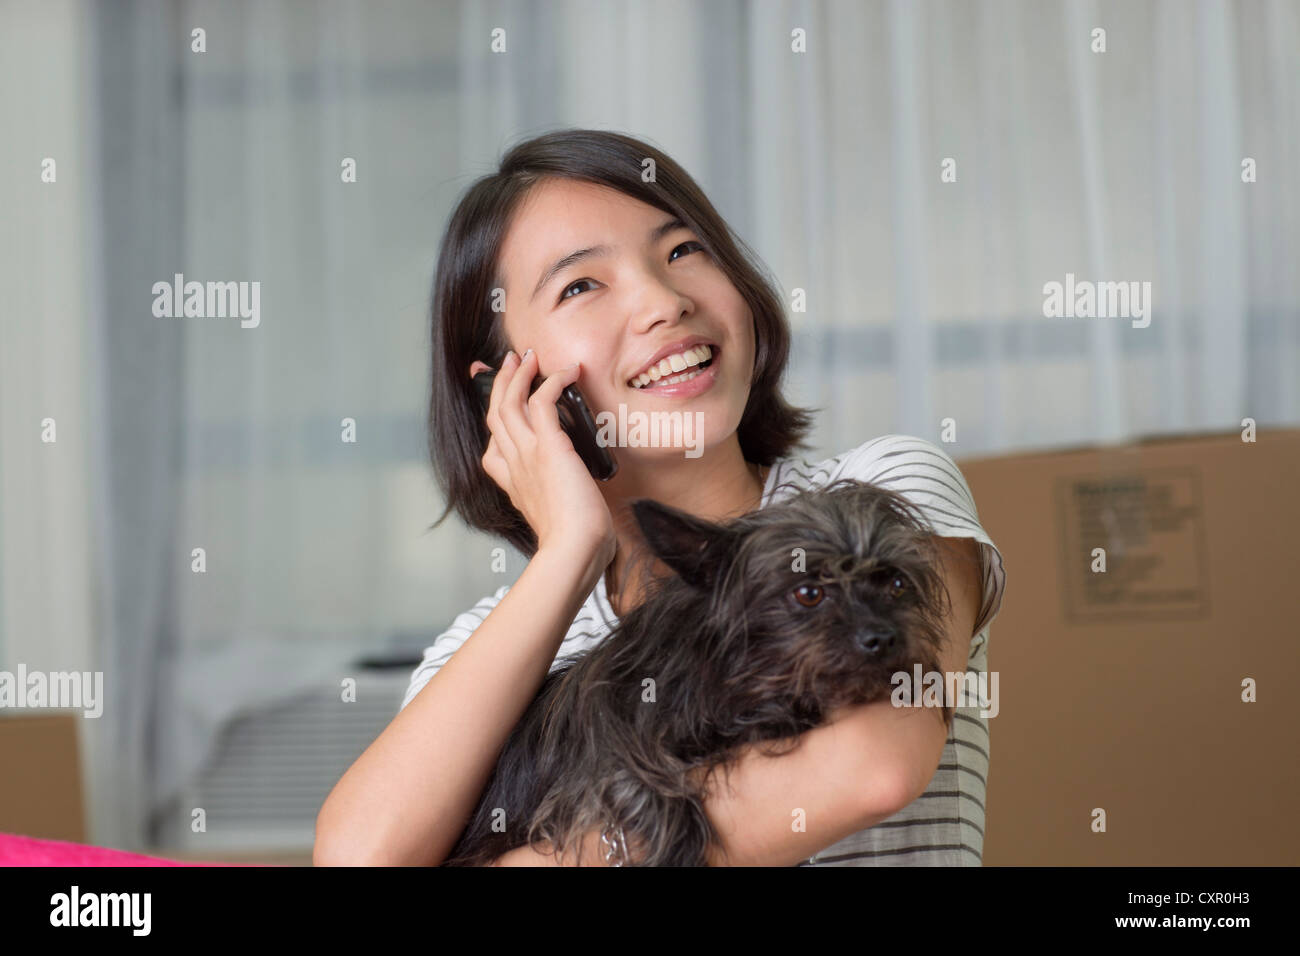 Young woman on cellphone with pet dog - Stock Image